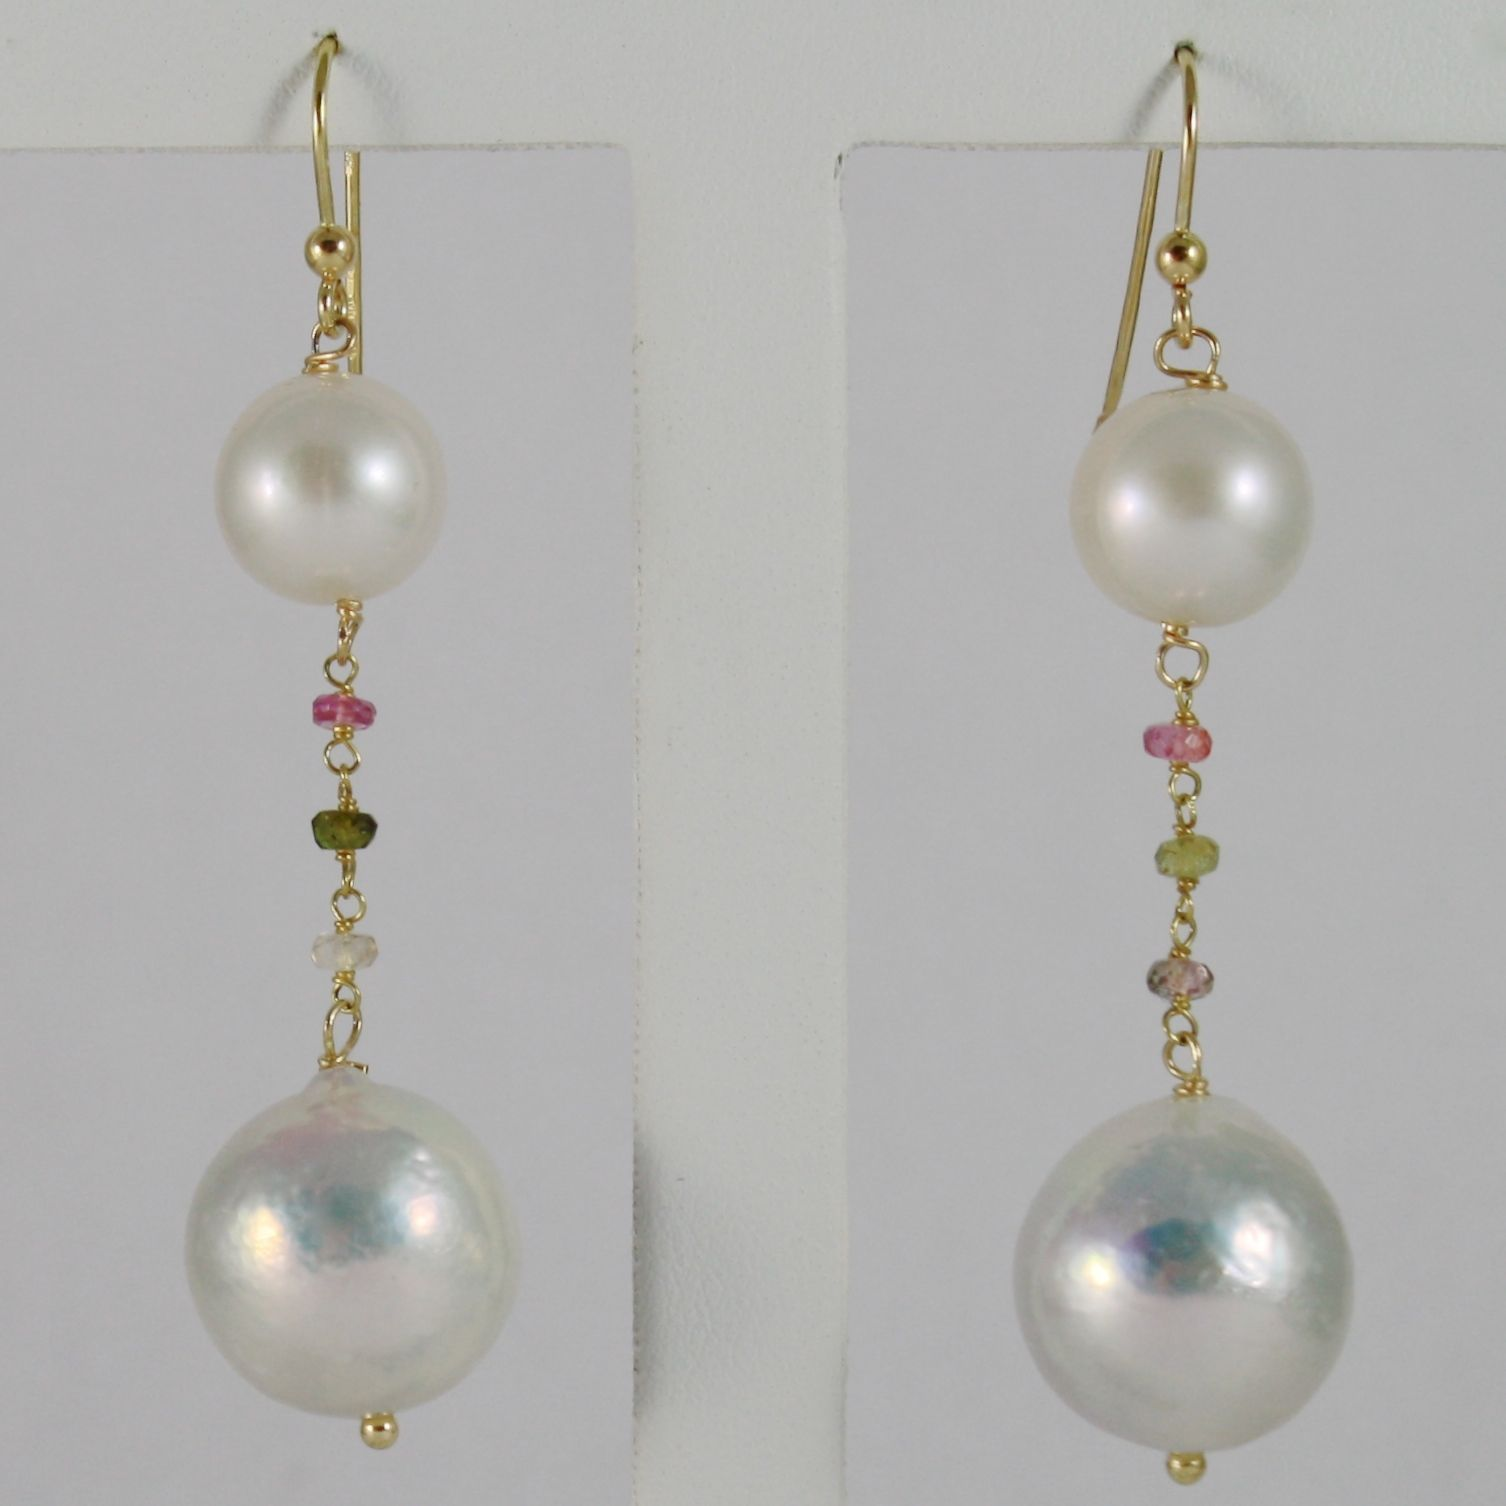 18K YELLOW GOLD PENDANT EARRINGS WITH BIG 13 MM WHITE FW PEARLS AND TOURMALINE